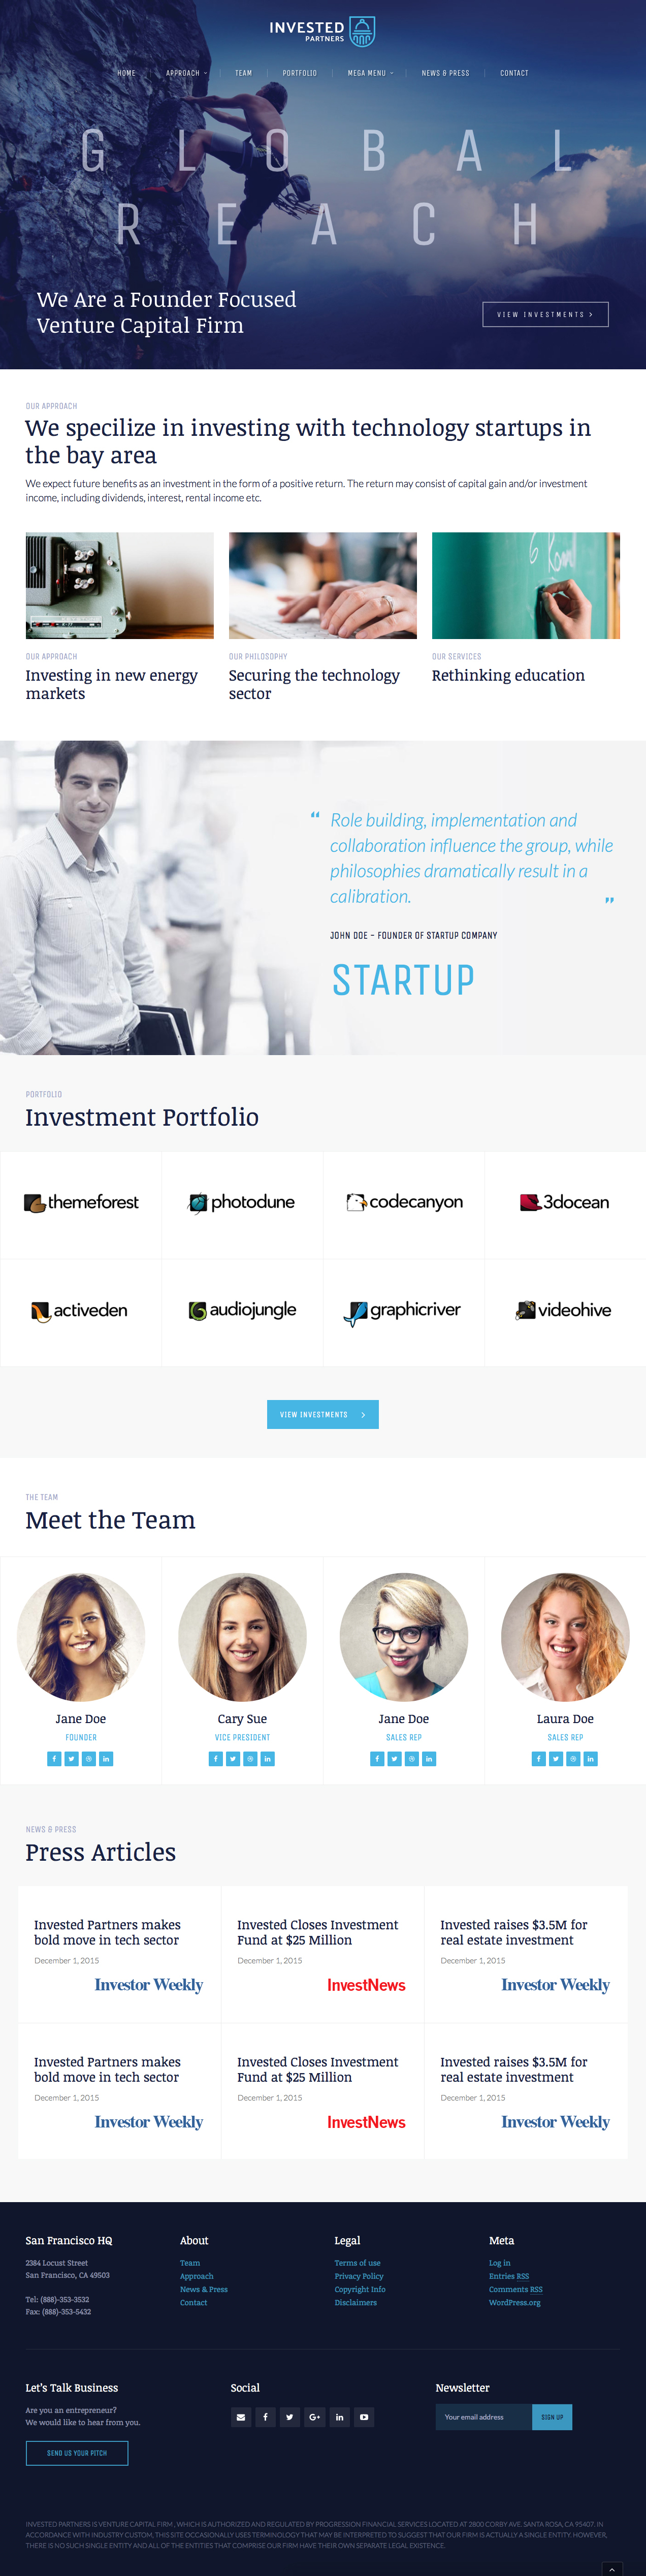 Google ventures theme - Invested Venture Capital Investment Theme